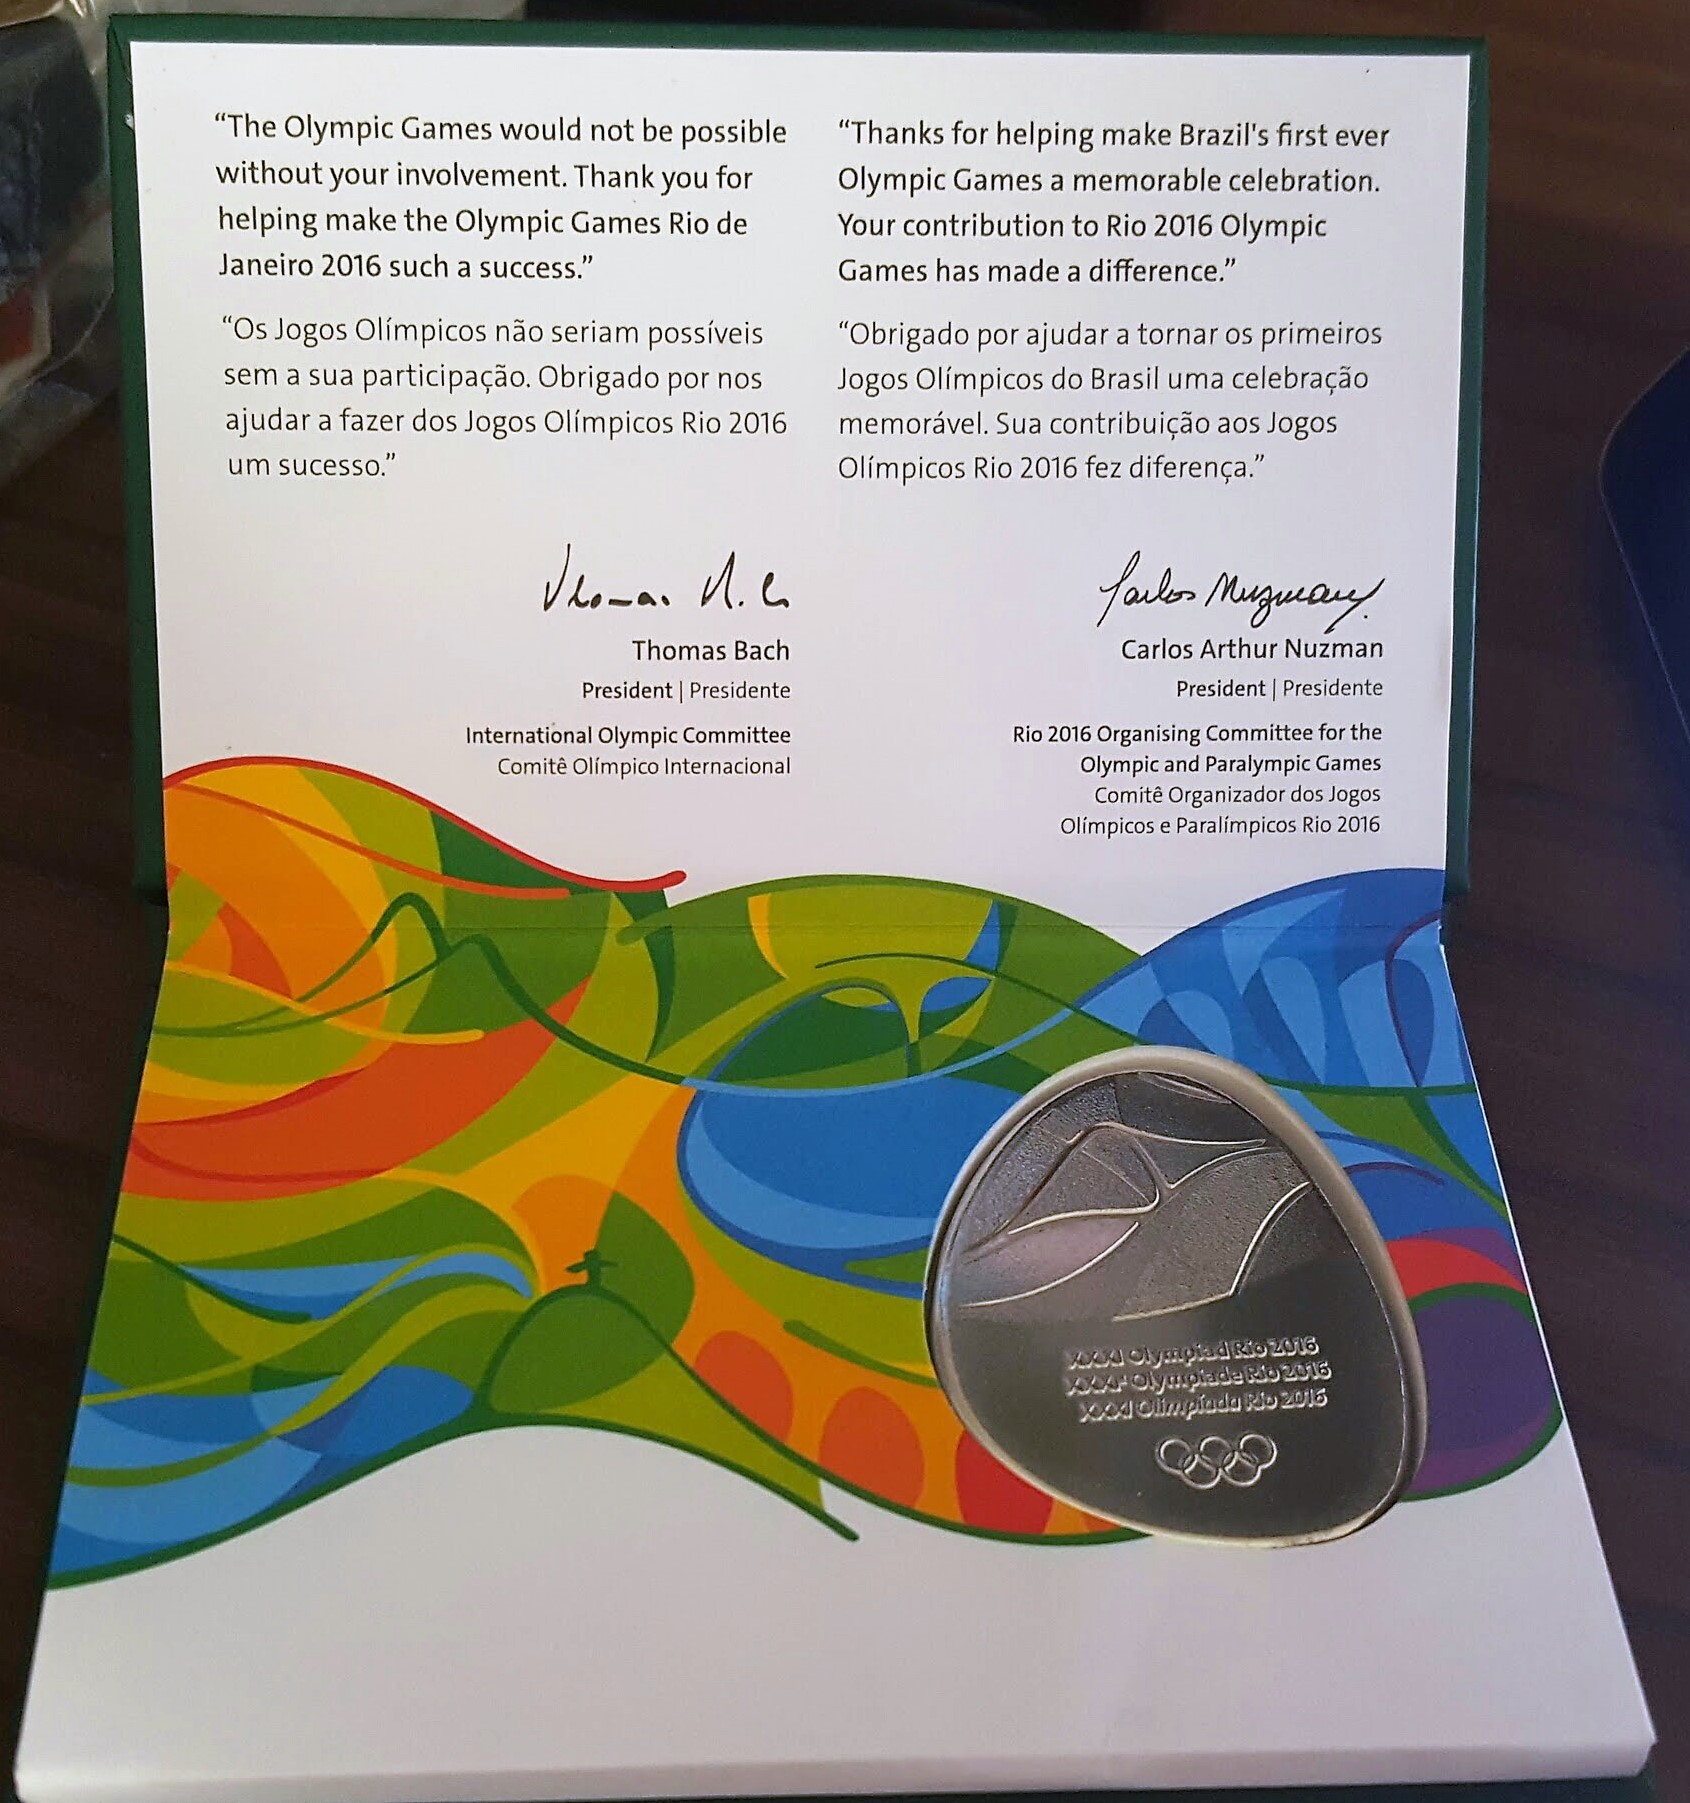 A beautiful gift for working in the Rio 2016 Olympic Games -